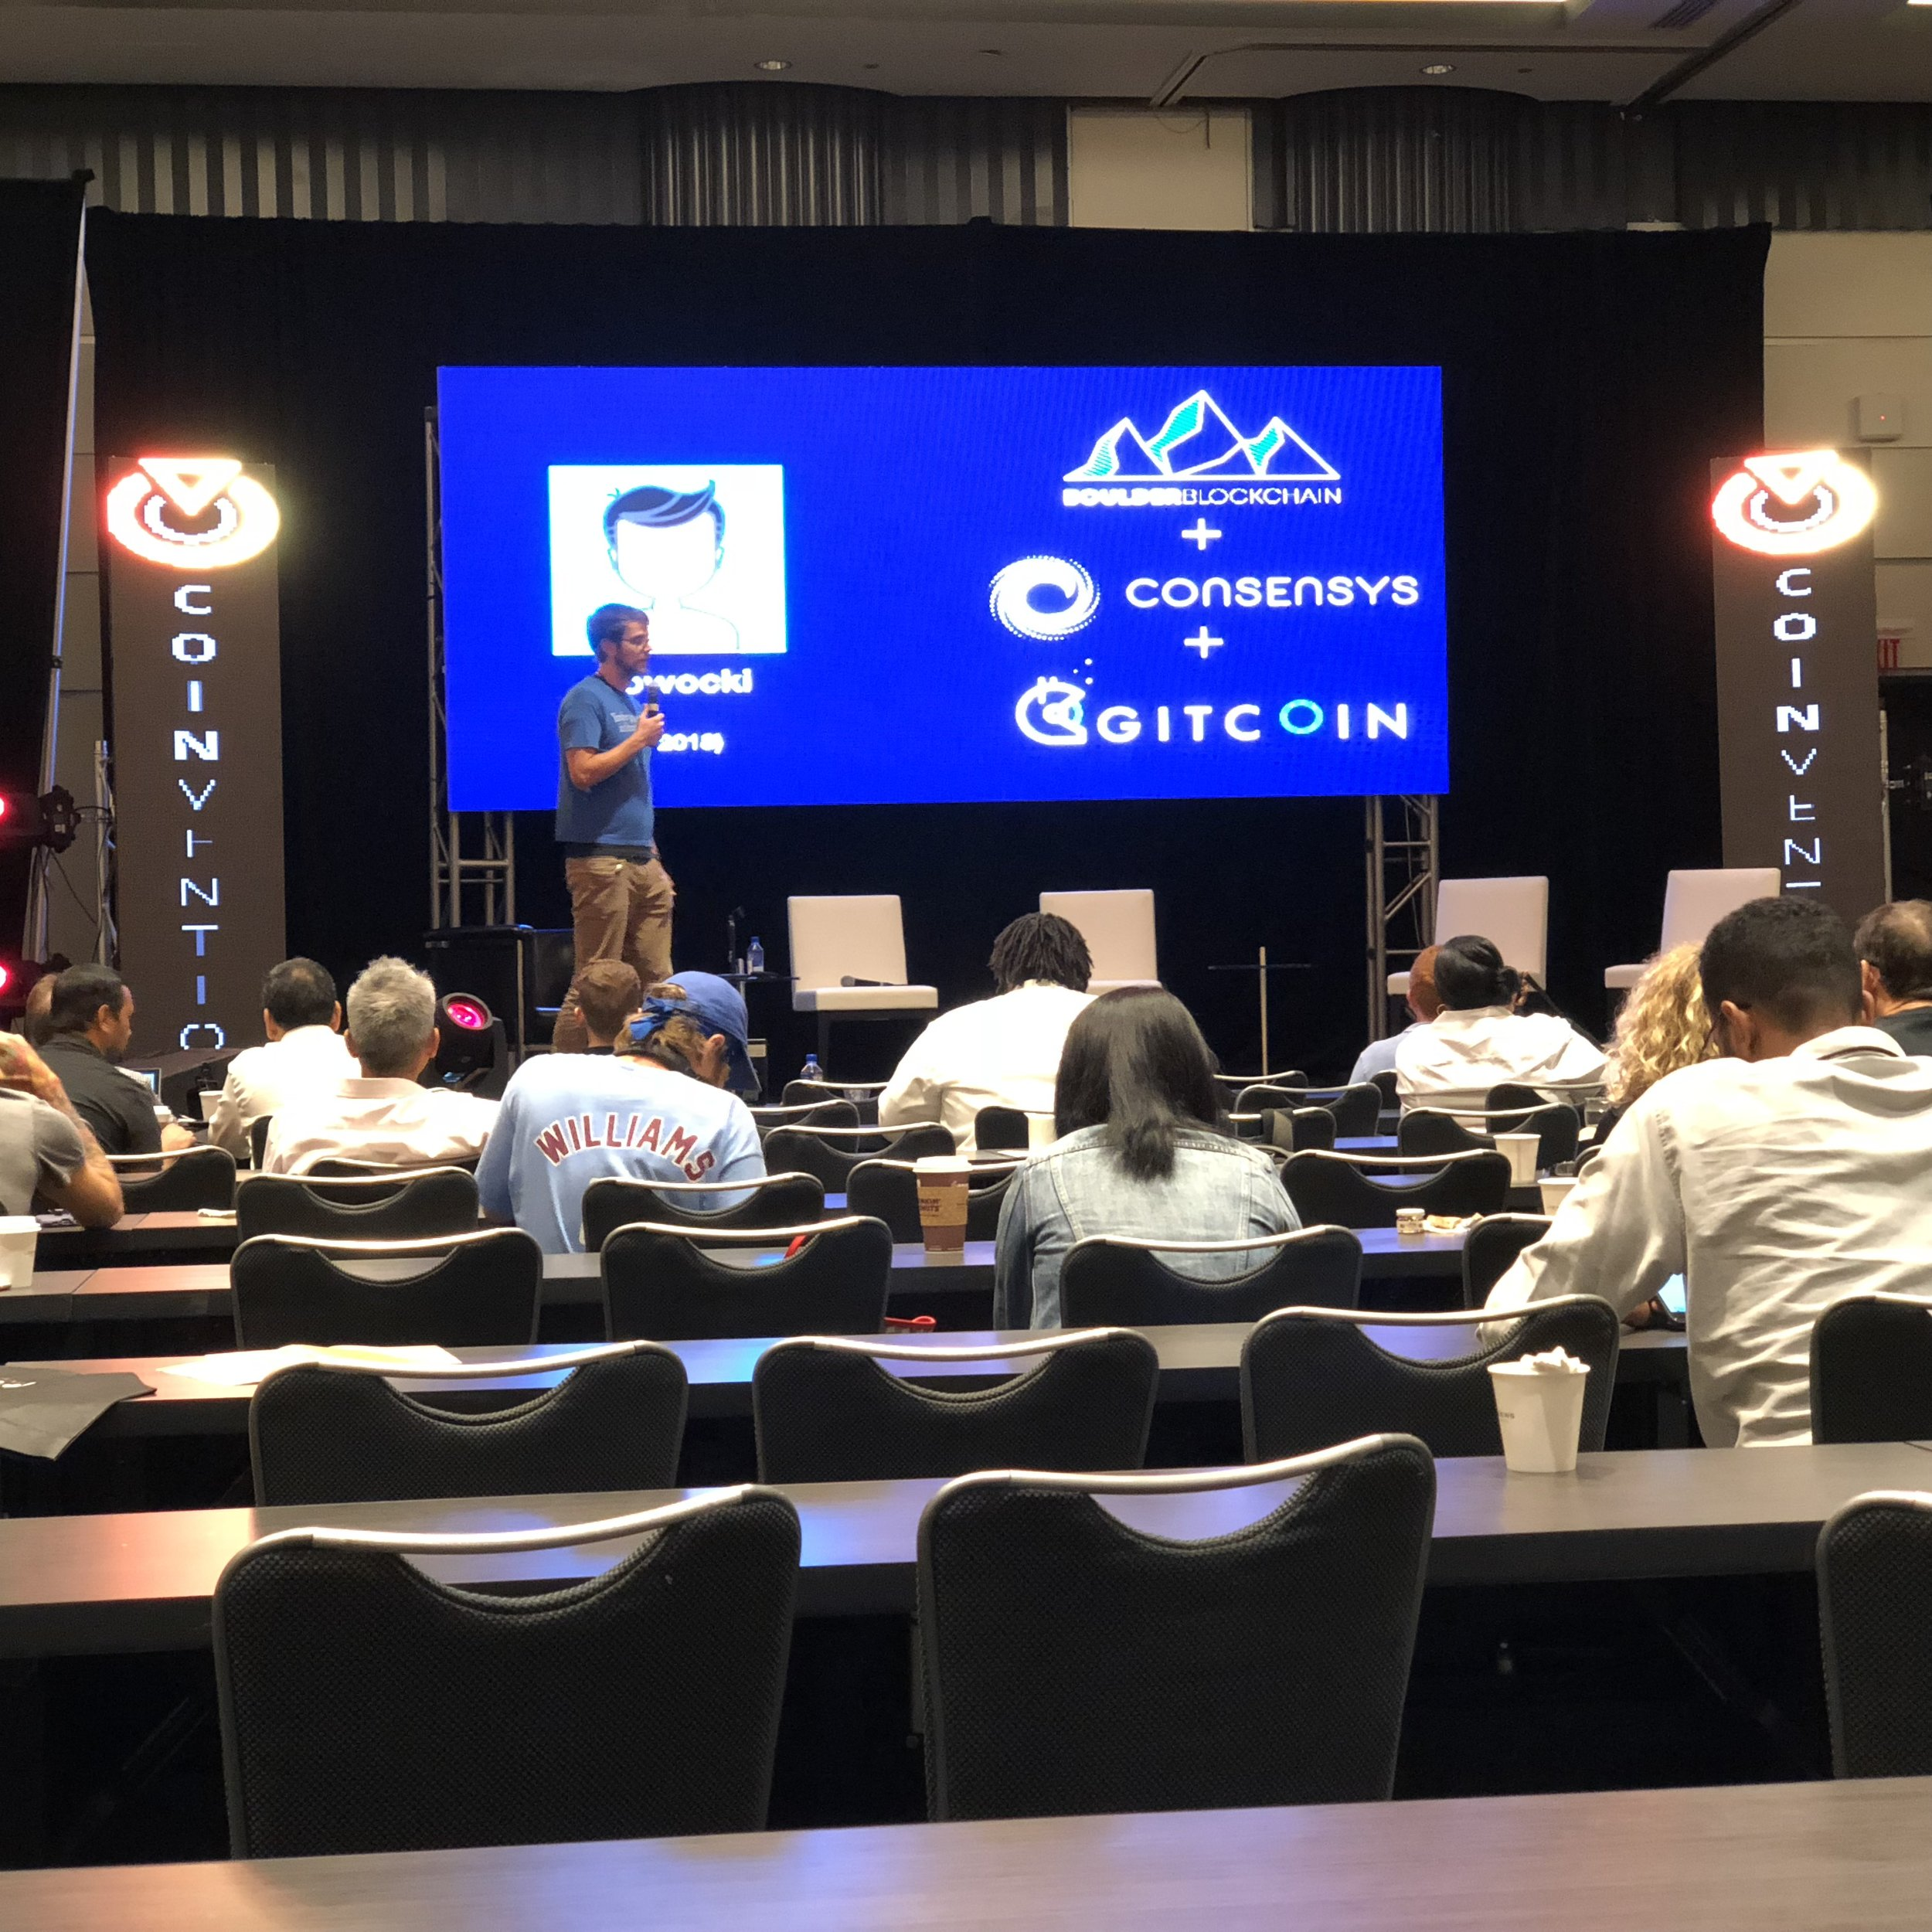 Kevin Owocki, founder of  Gitcoin , gave my favorite talk of the day